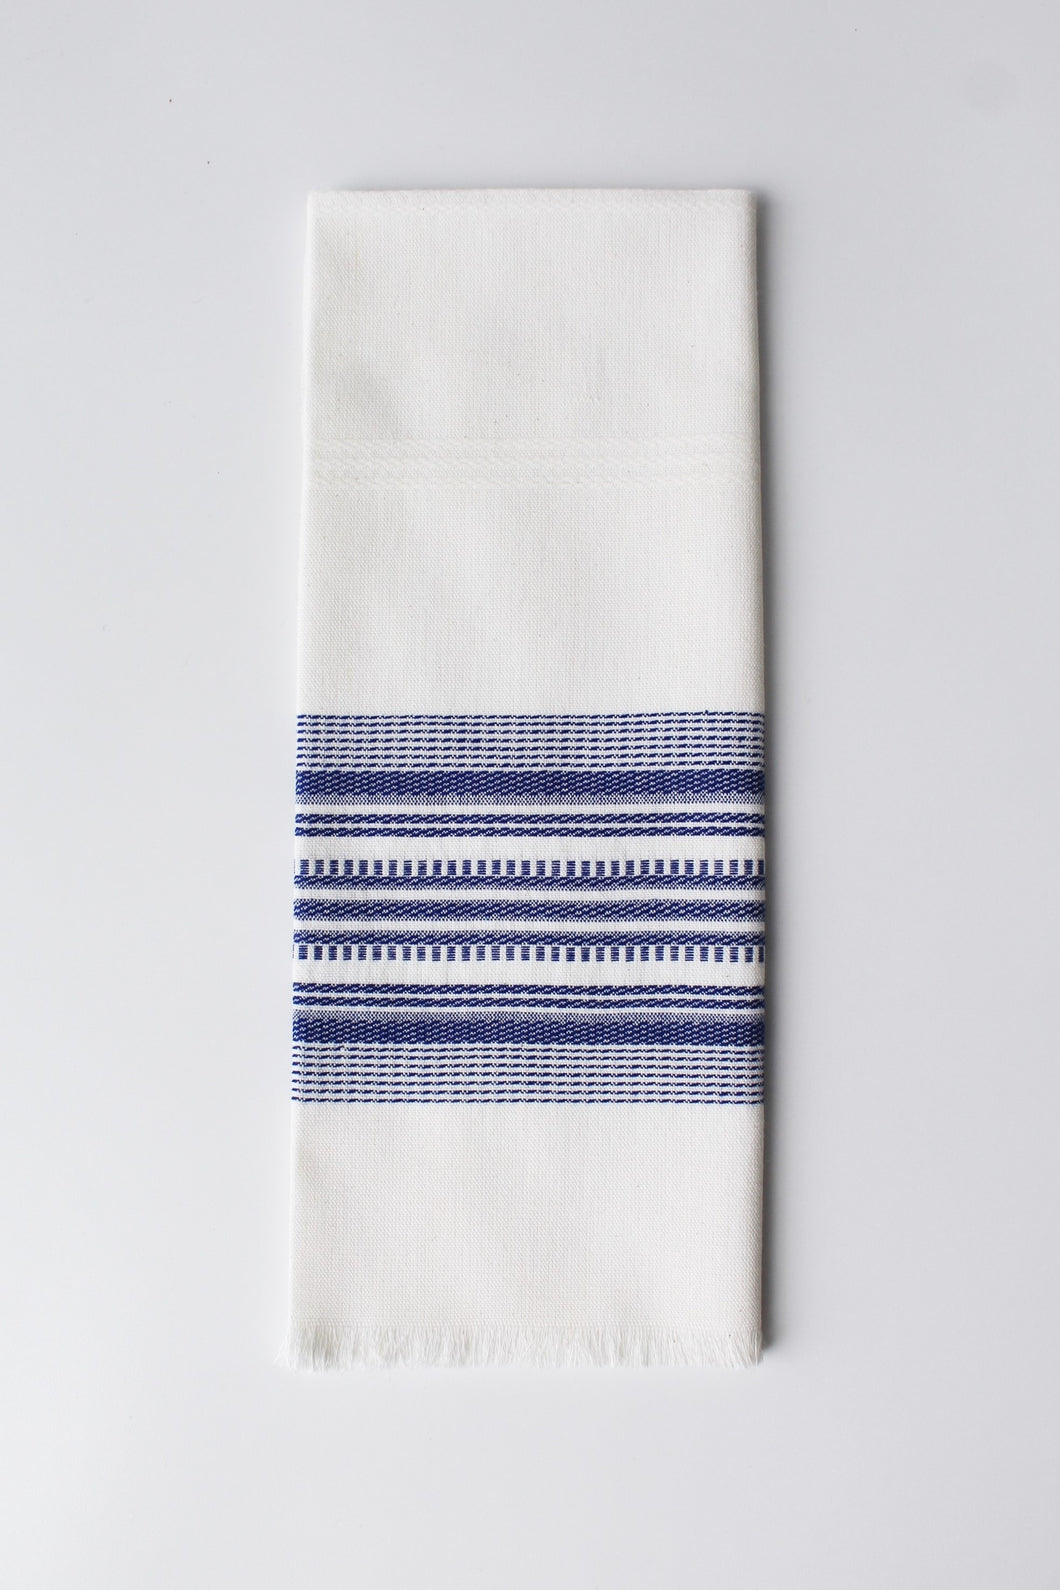 Tea Towels Blue on White - set of 2